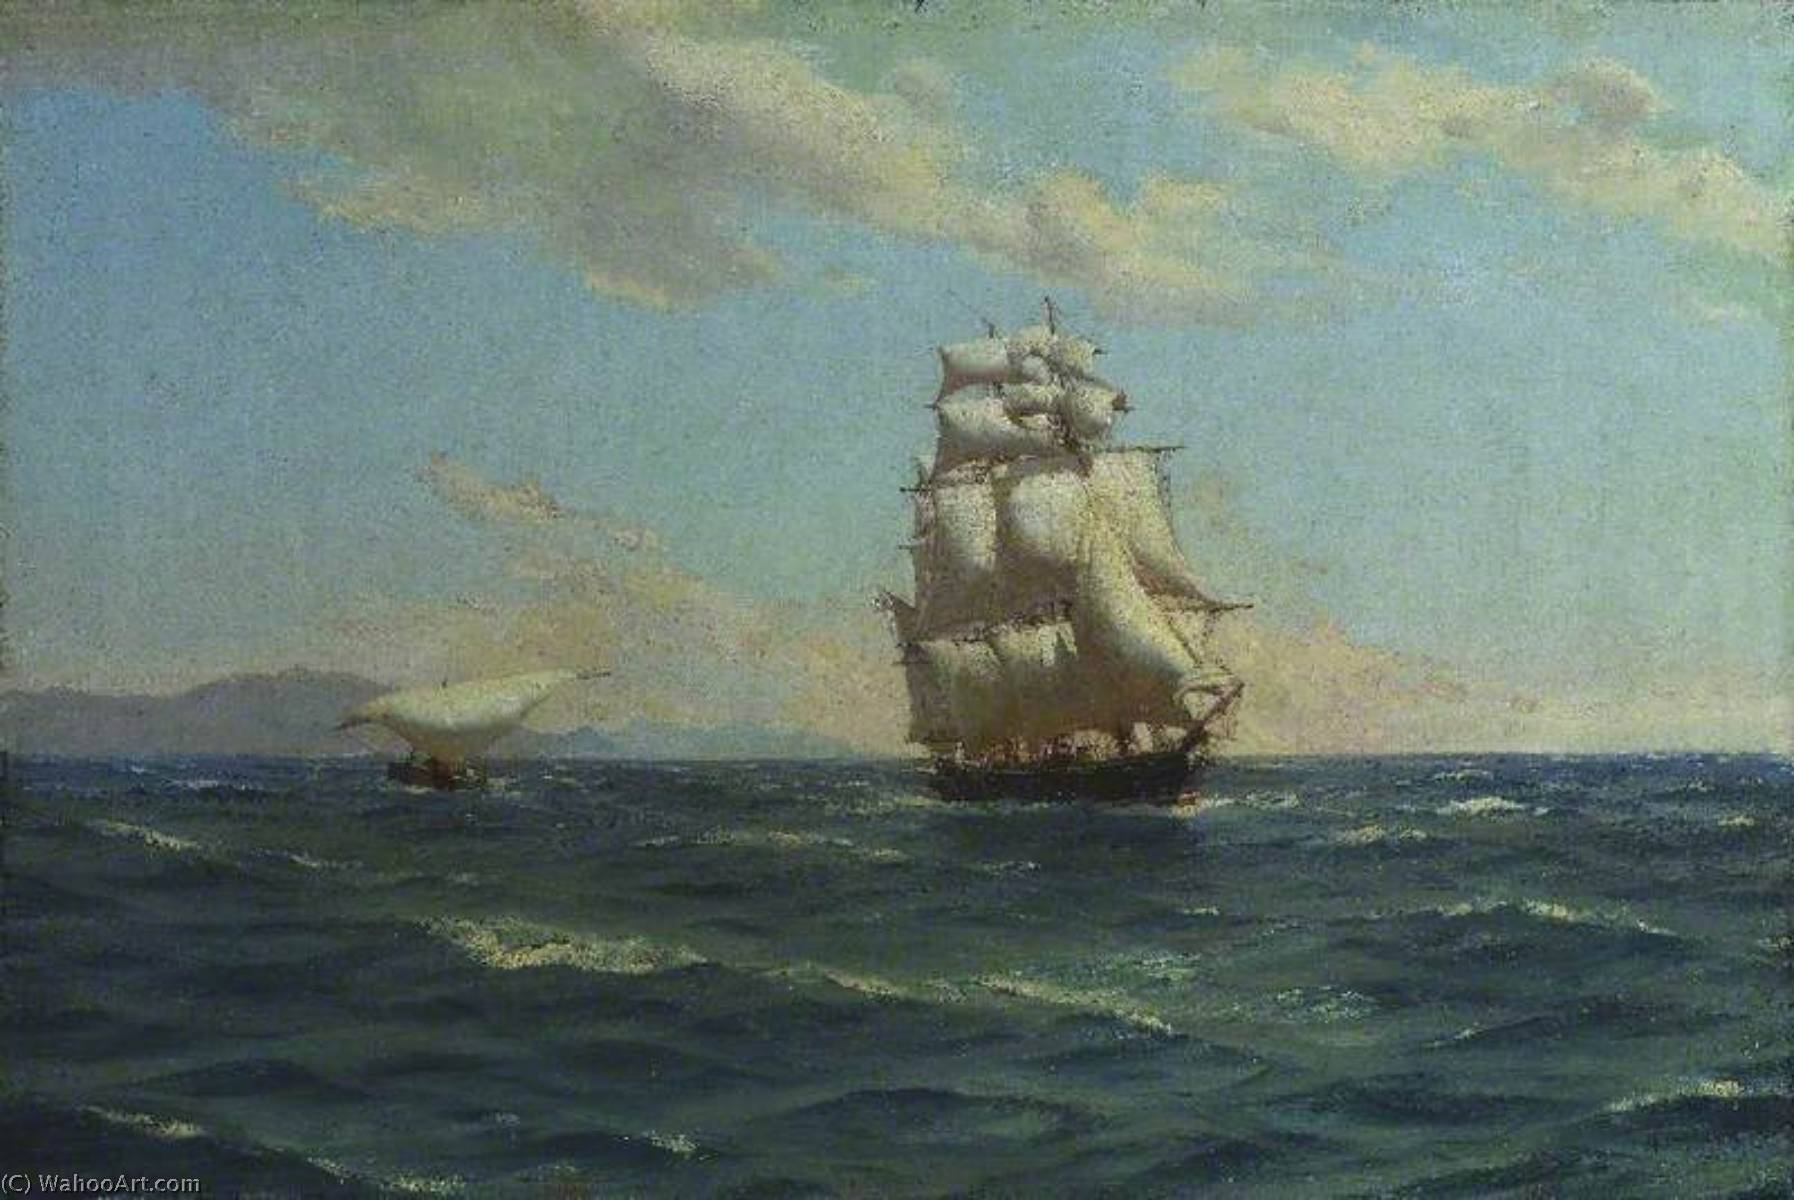 Off the Canaries (British Cruiser 'Auxiliary Steam'), 1892 by Thomas Jacques Somerscales (1842-1927) | WahooArt.com